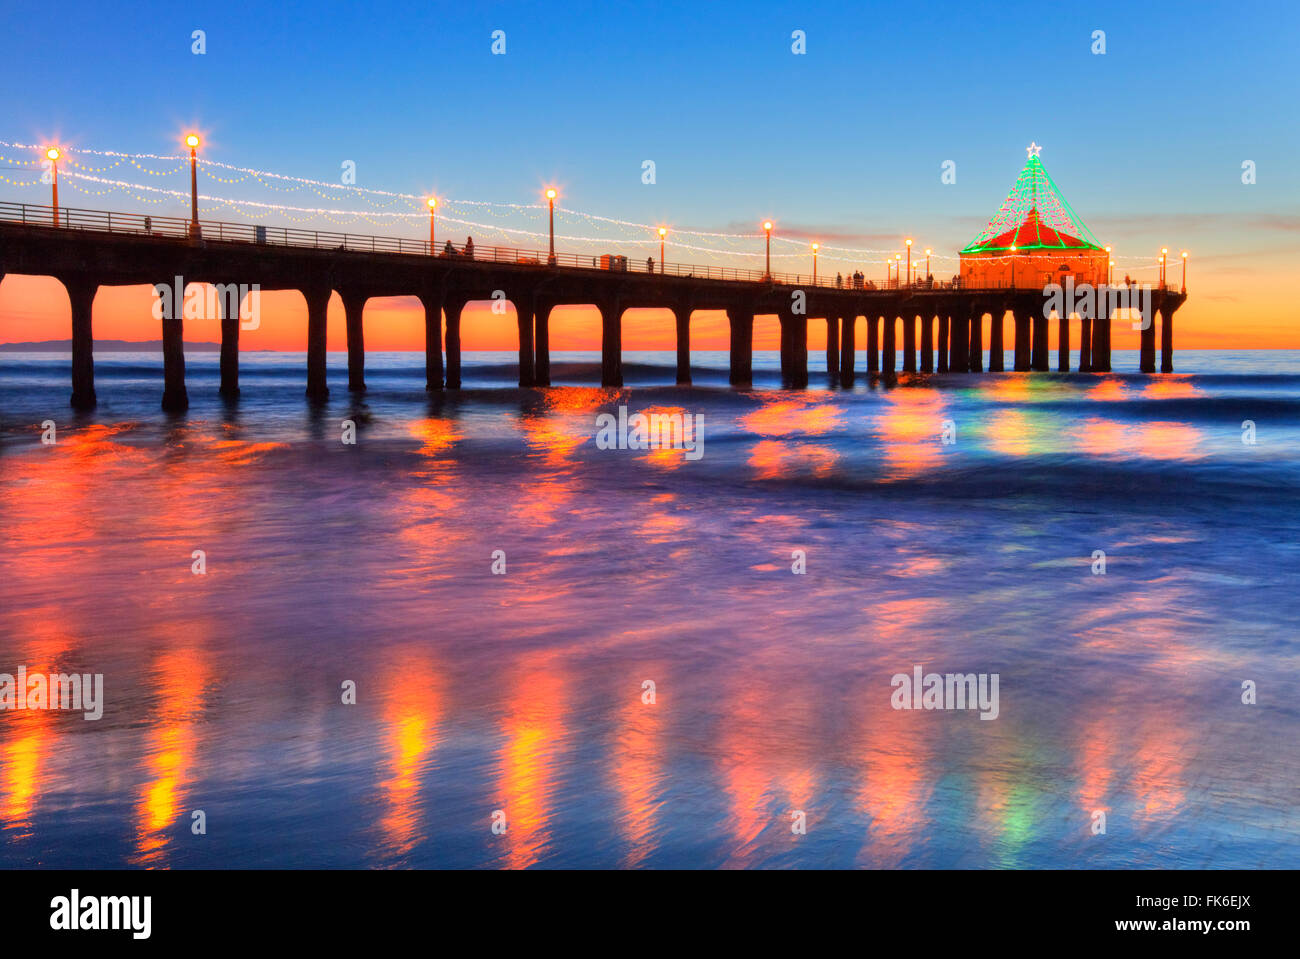 Manhattan Beach Pier at sunset, Roundhouse Marine Studies Lab and Aquarium, California, United States - Stock Image